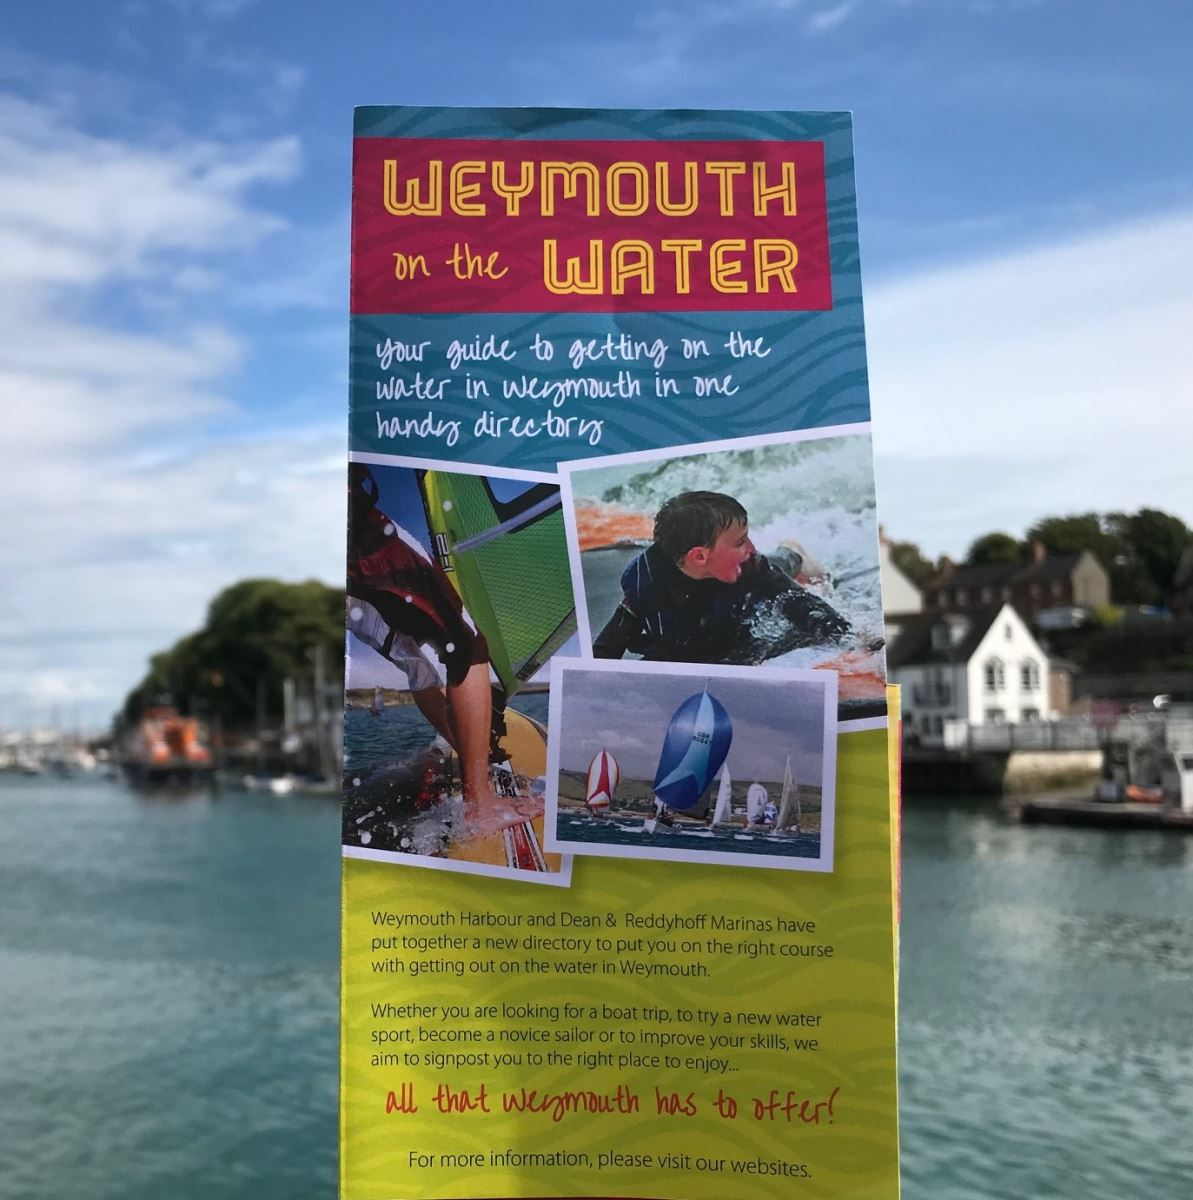 Weymouth on the Water